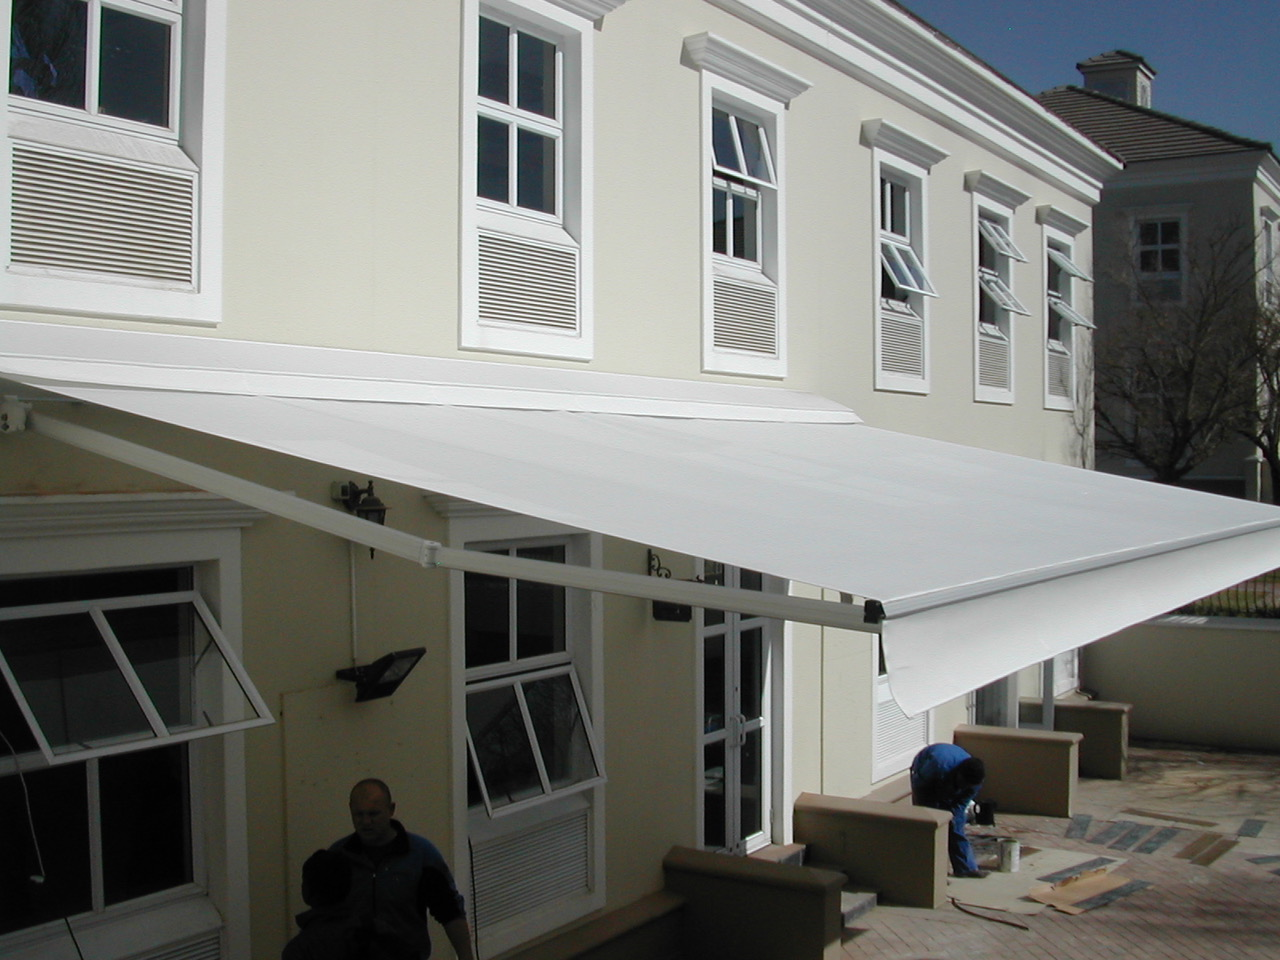 AWNING FABRIC - TEMPOTEST FABRIC | AWNING fABRIC | TENT ...